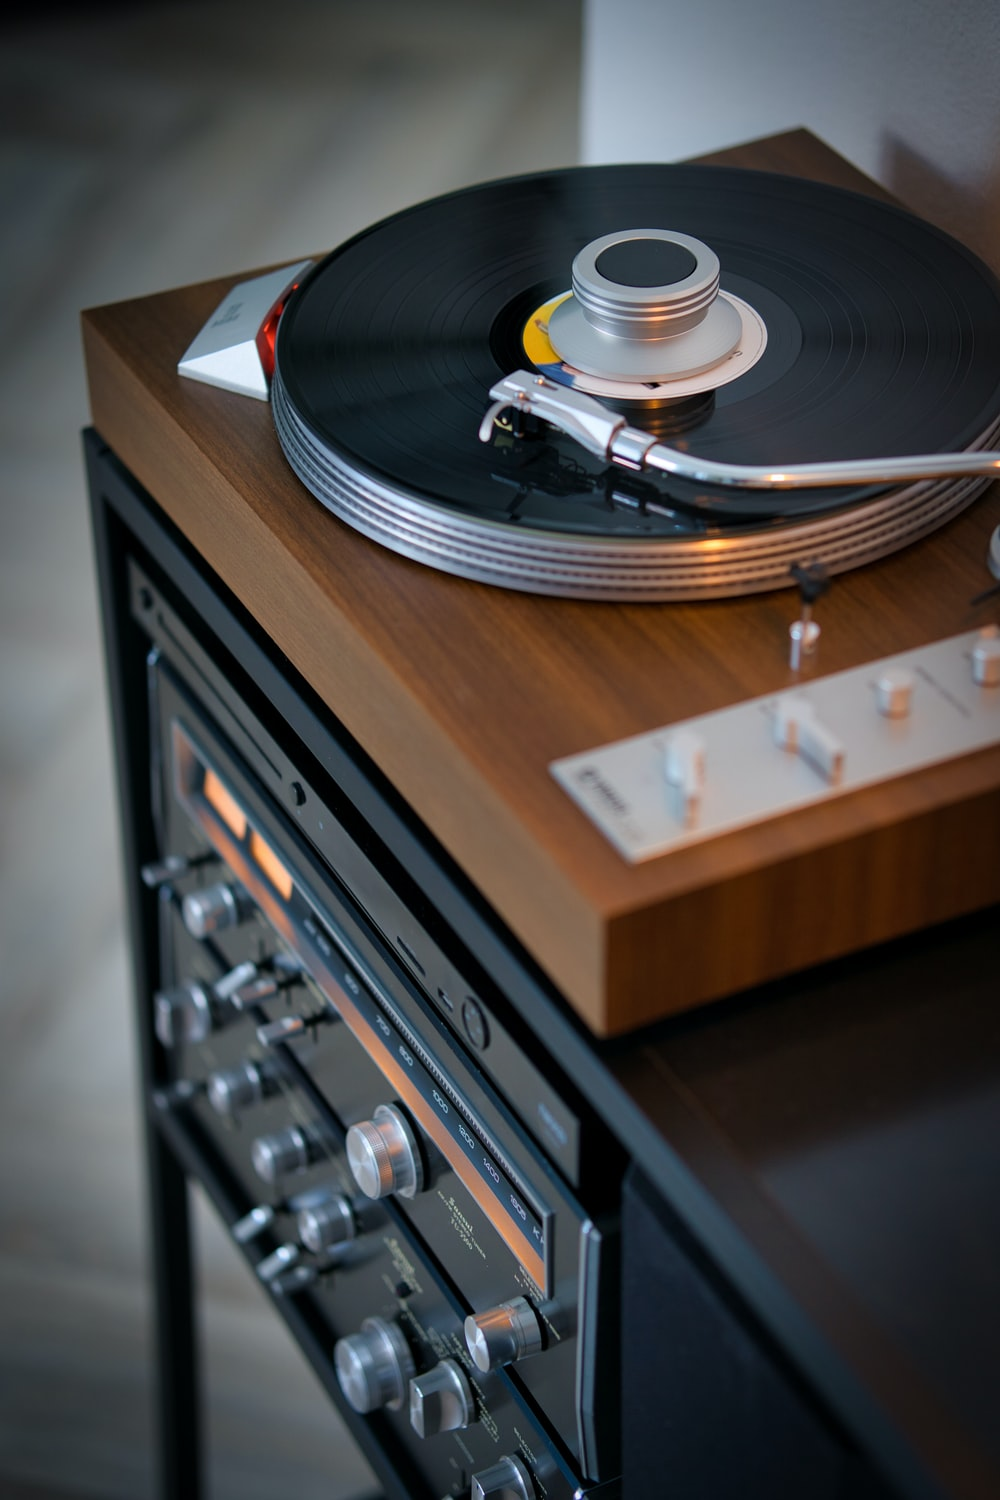 vinyl record player on brown wooden table